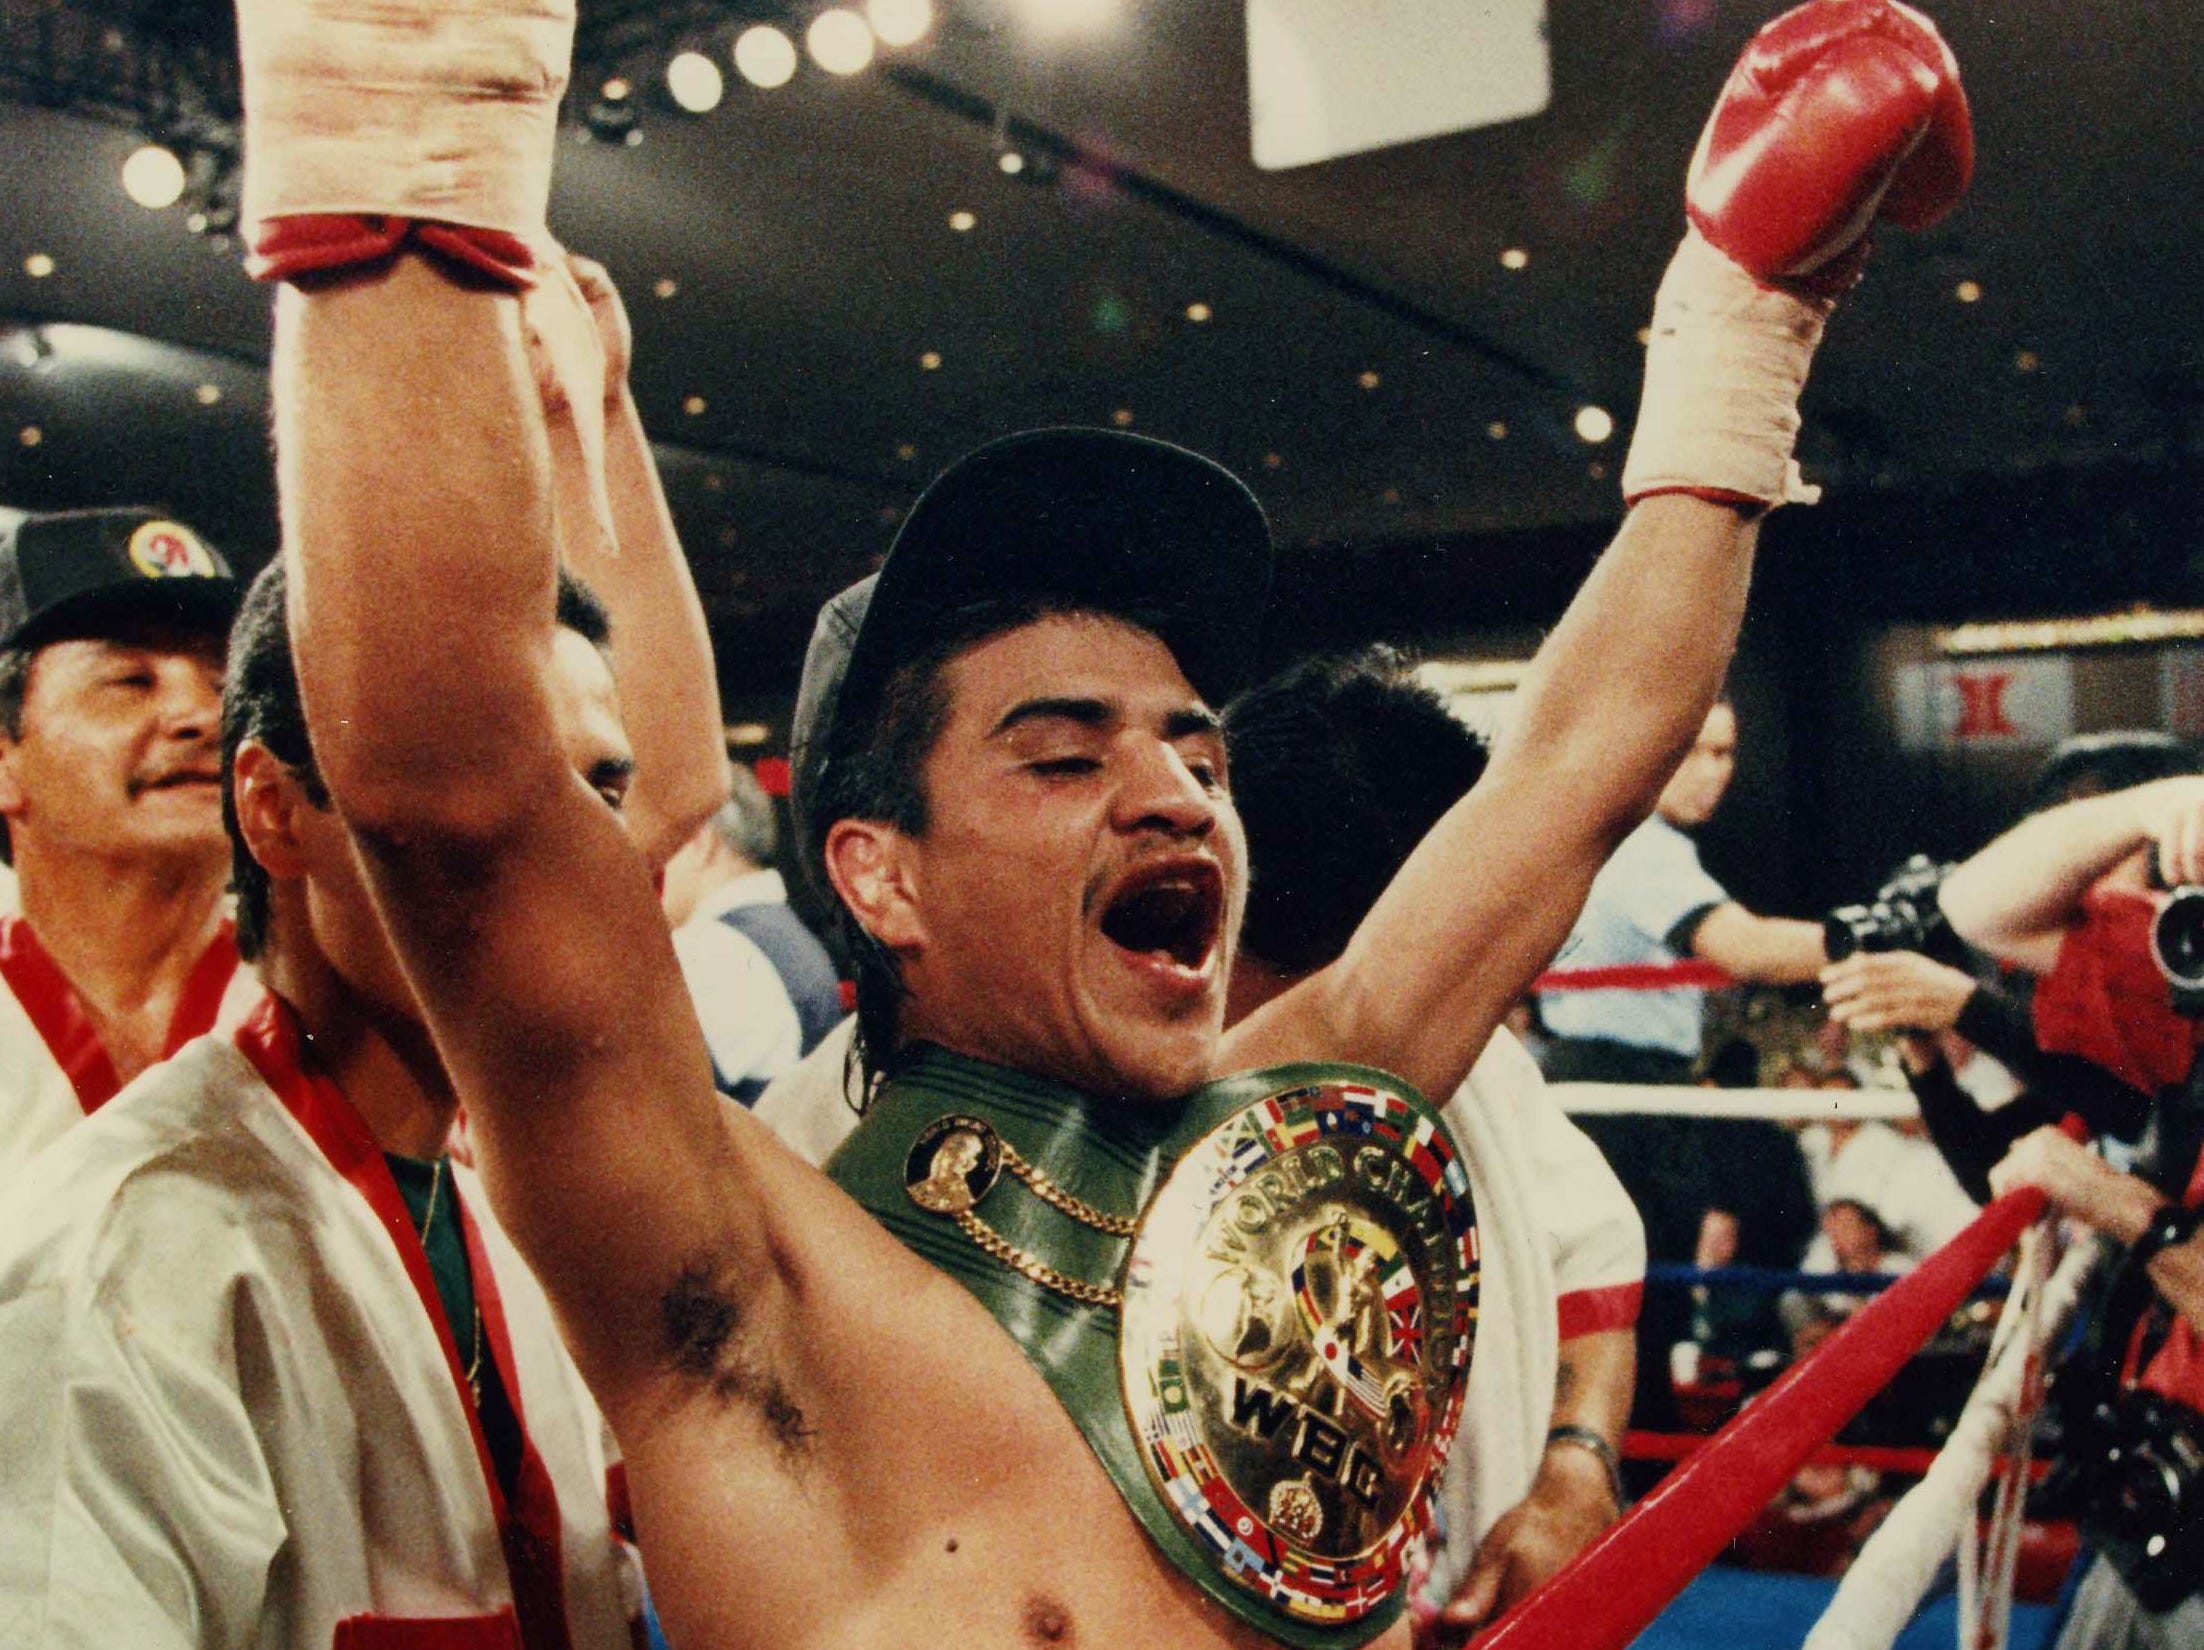 Light-flyweight boxer Michael Carbajal was a five-time boxing championand won a silver medal at the 1988 Seoul Olympics.